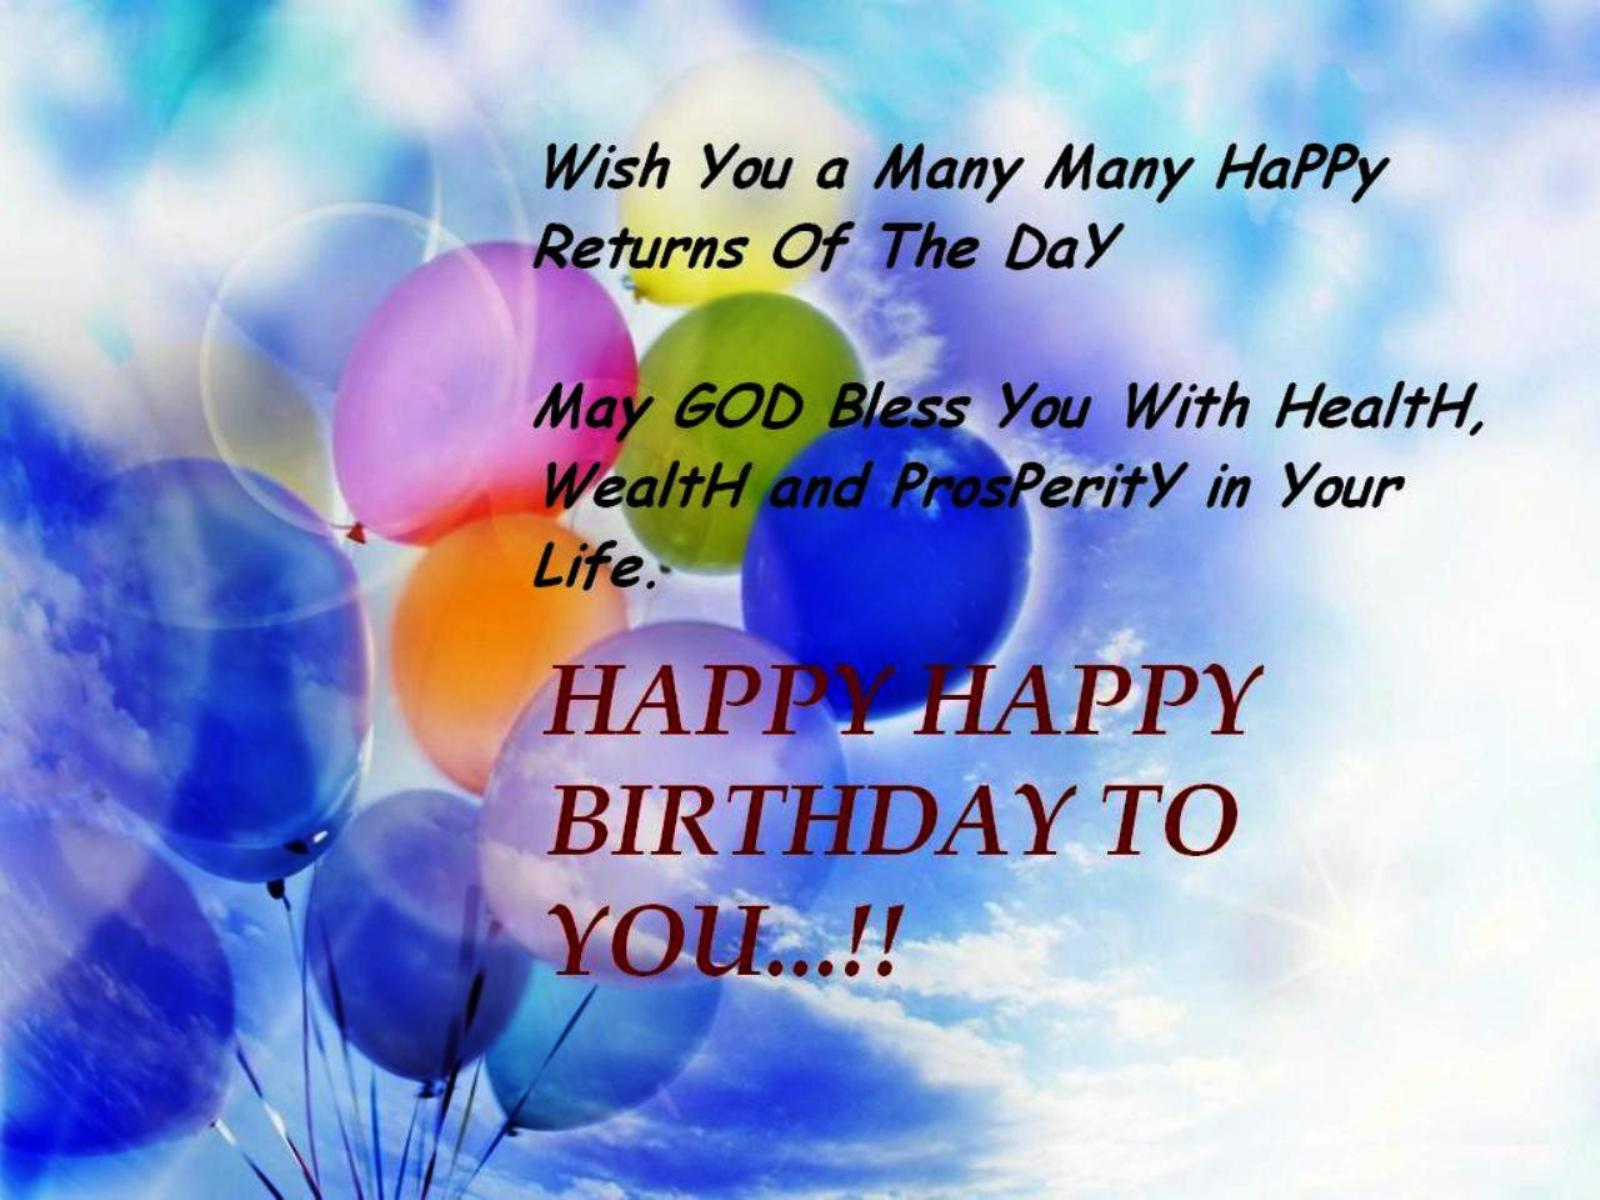 Happy Birthday Wishes And Birthday Images Happy Birthday Happy Birthday Wishes Quotes For